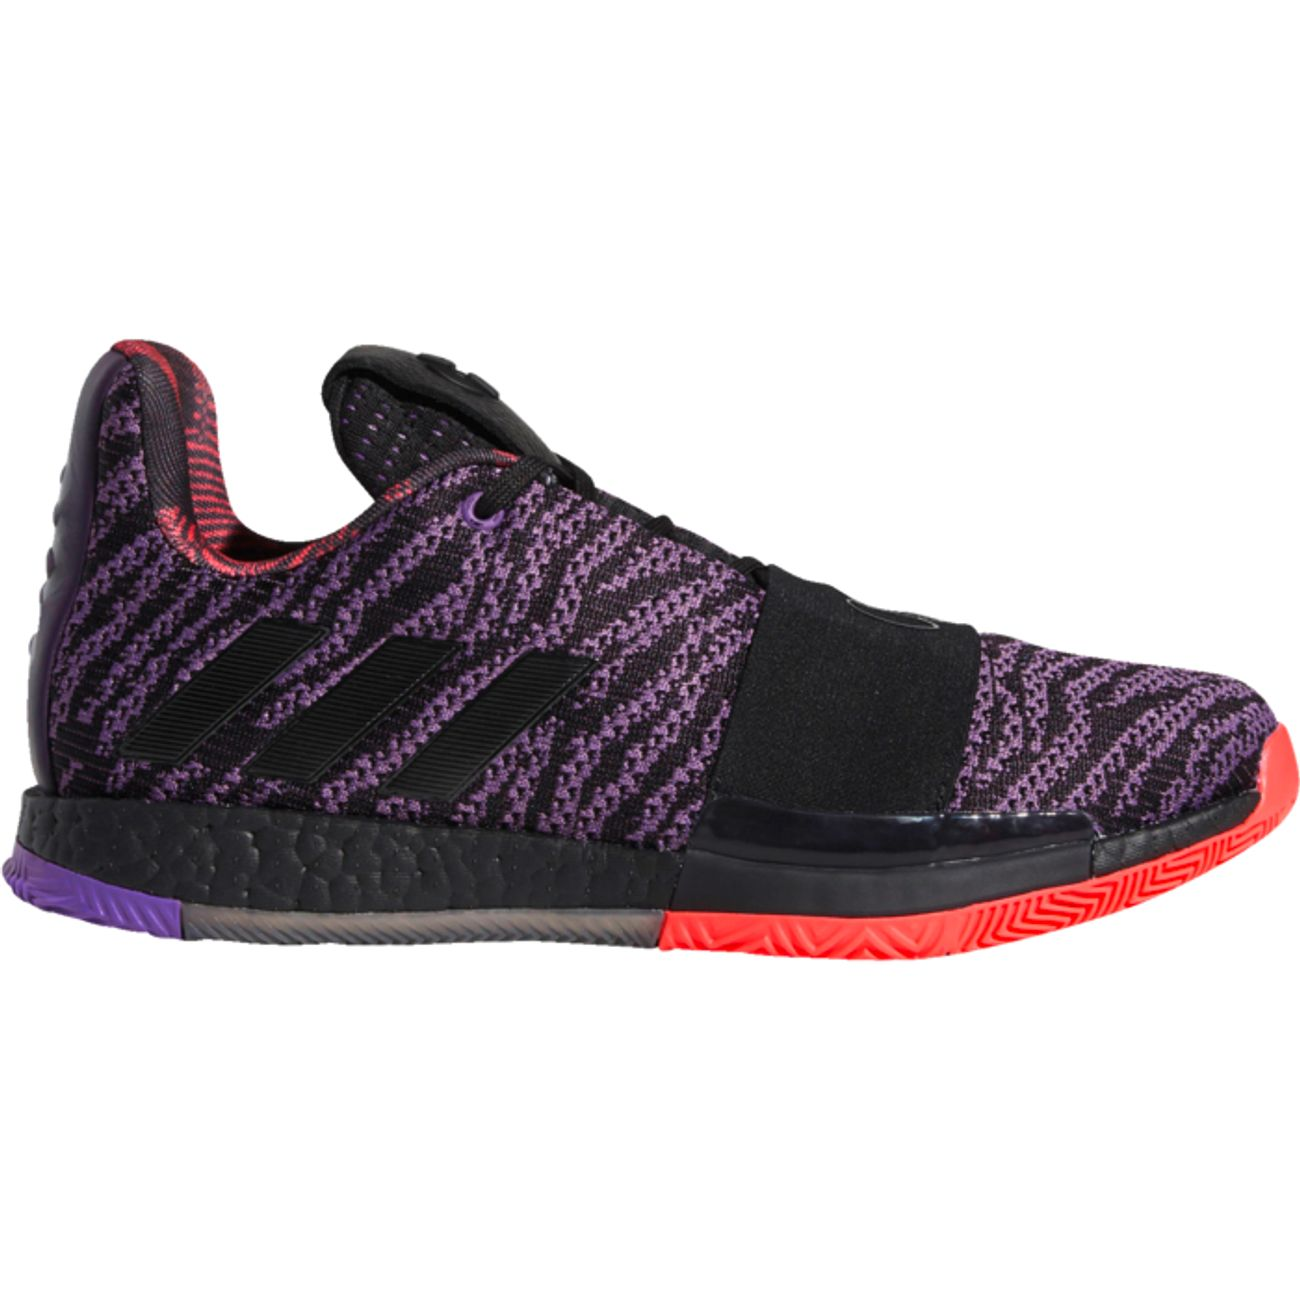 CHAUSSURES BASSES Football adulte ADIDAS HARDEN VOL. 3